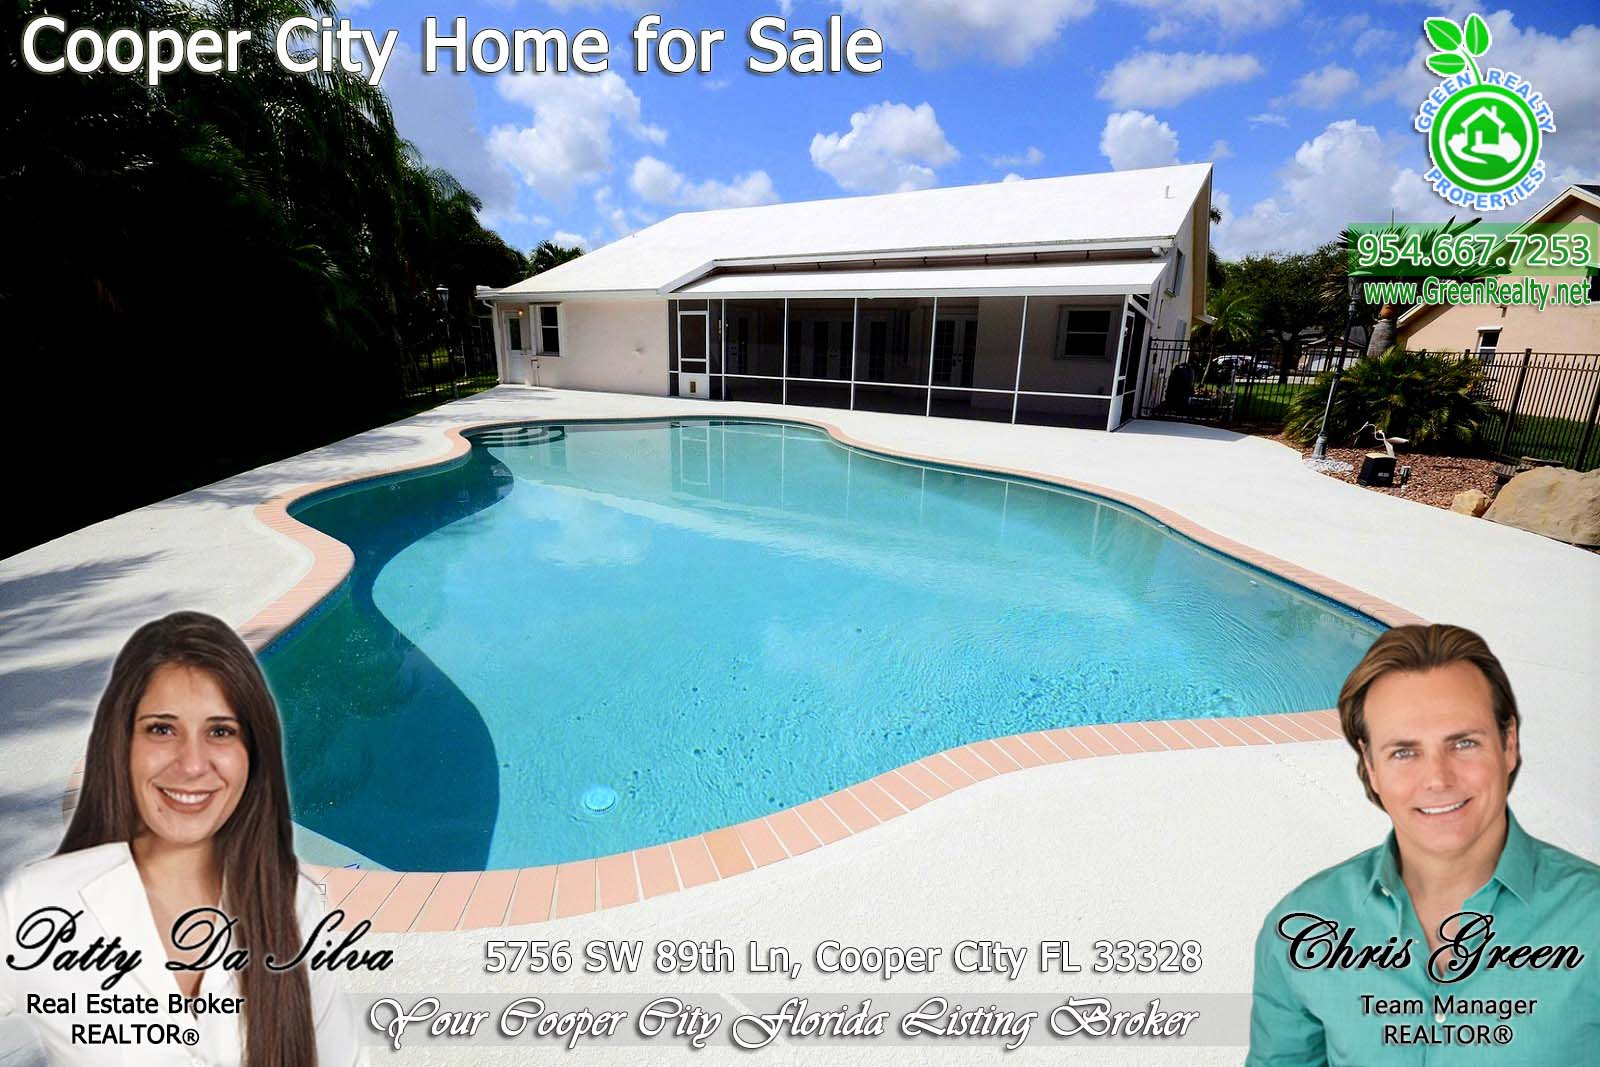 Coopers Pointe - Cooper City Florida Homes For Sale (18)